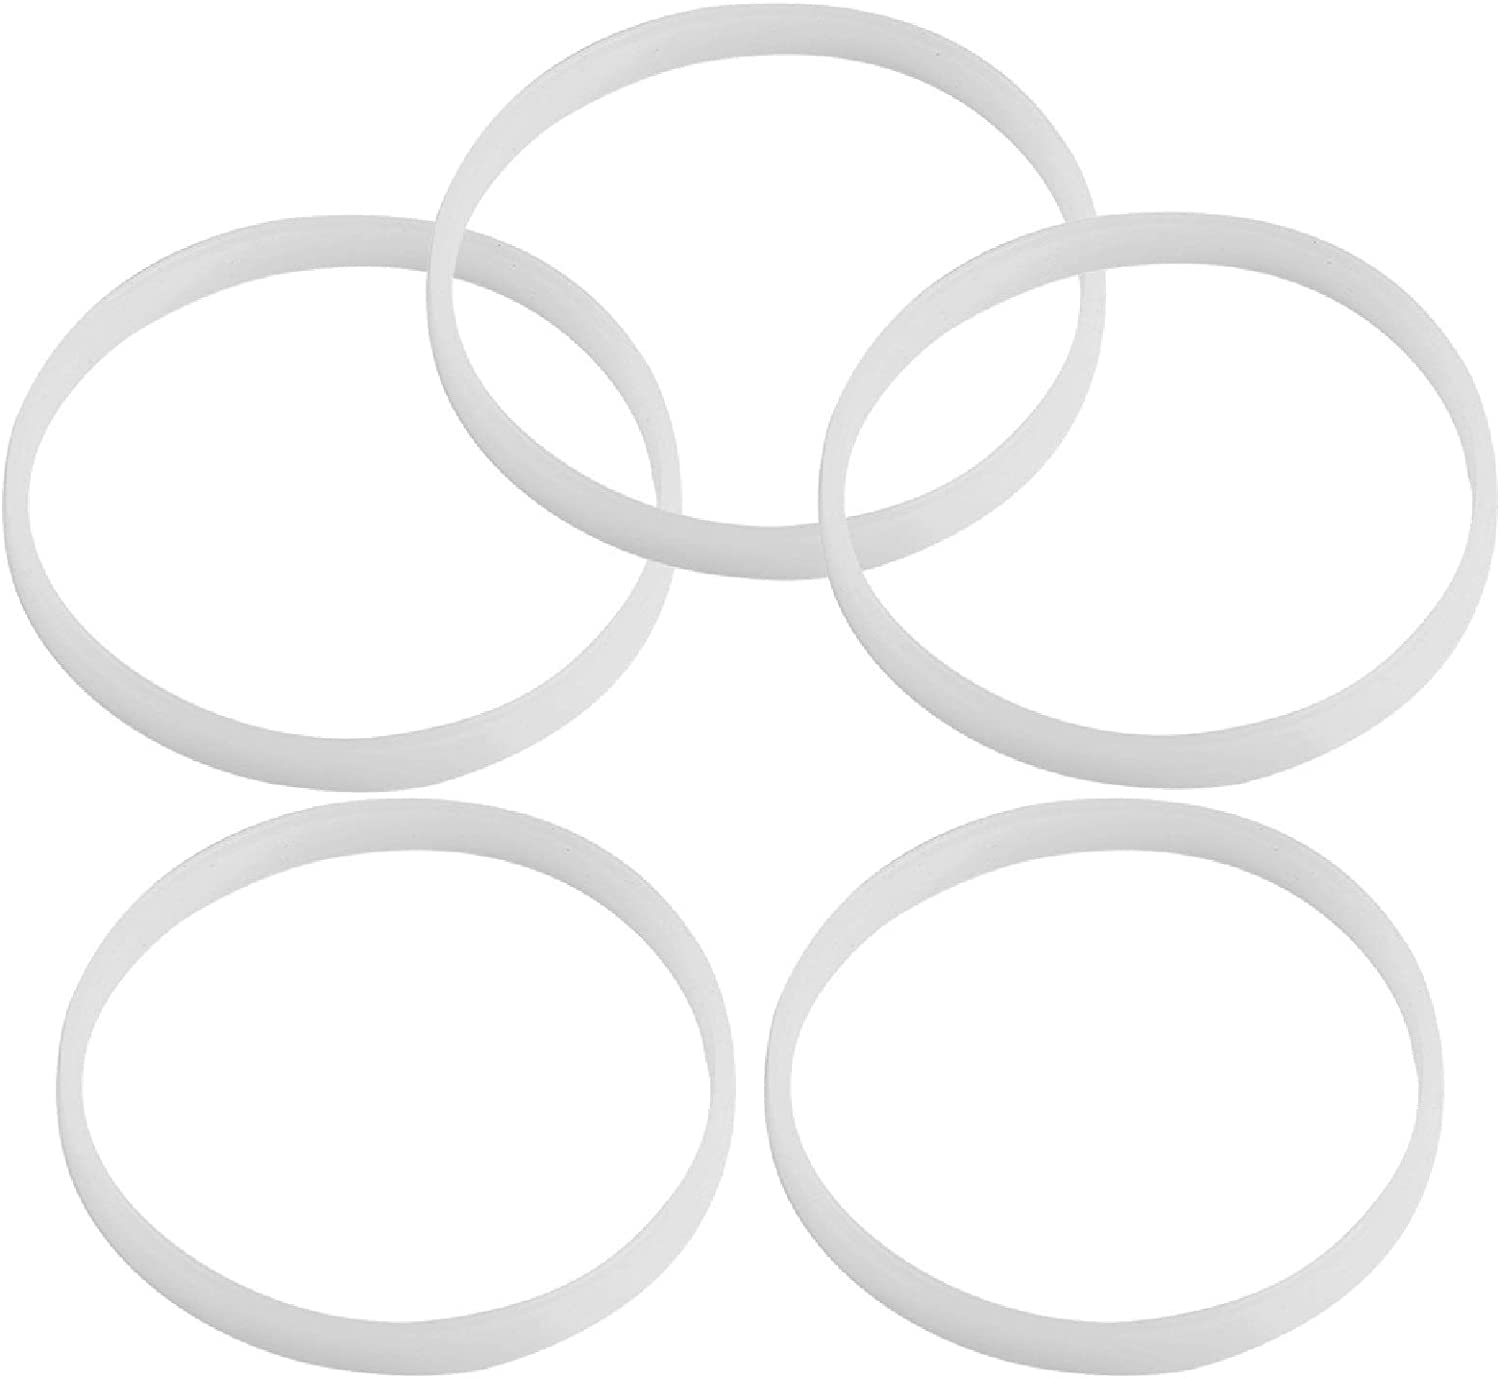 5 Pack Rubber Gaskets Replacement Seal White O-Ring for Nutri Ninja Blender Replacement Parts Ninjia Auto-iQ Pro Extractor CT680 BL456 BL480 BL681A BL682 BL640 (3.94 inch Gaskets)